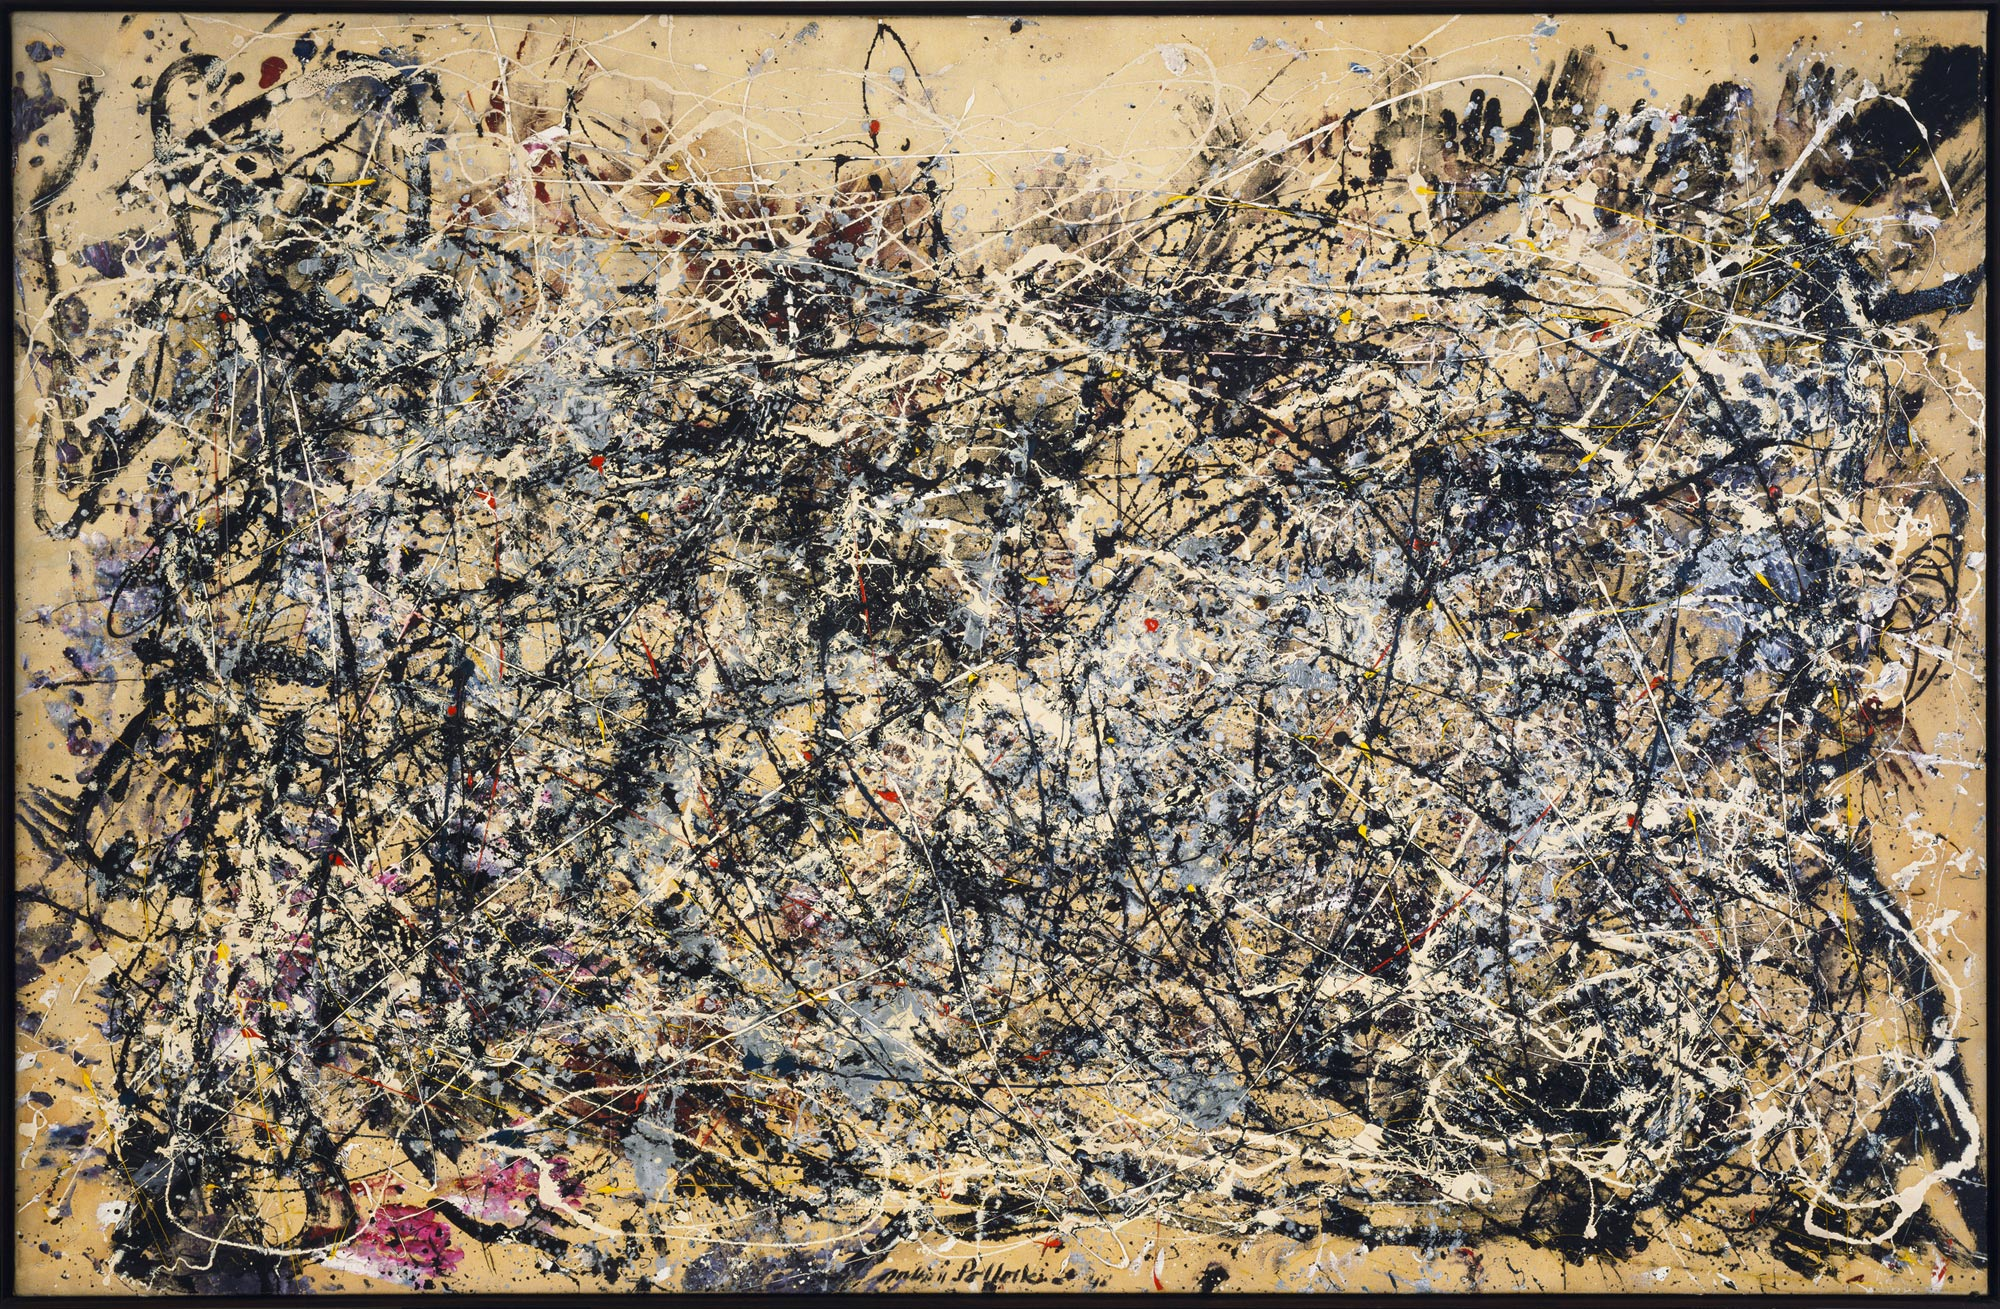 the king of american painting is created jackson pollock 1912 number 1 1948 pollock